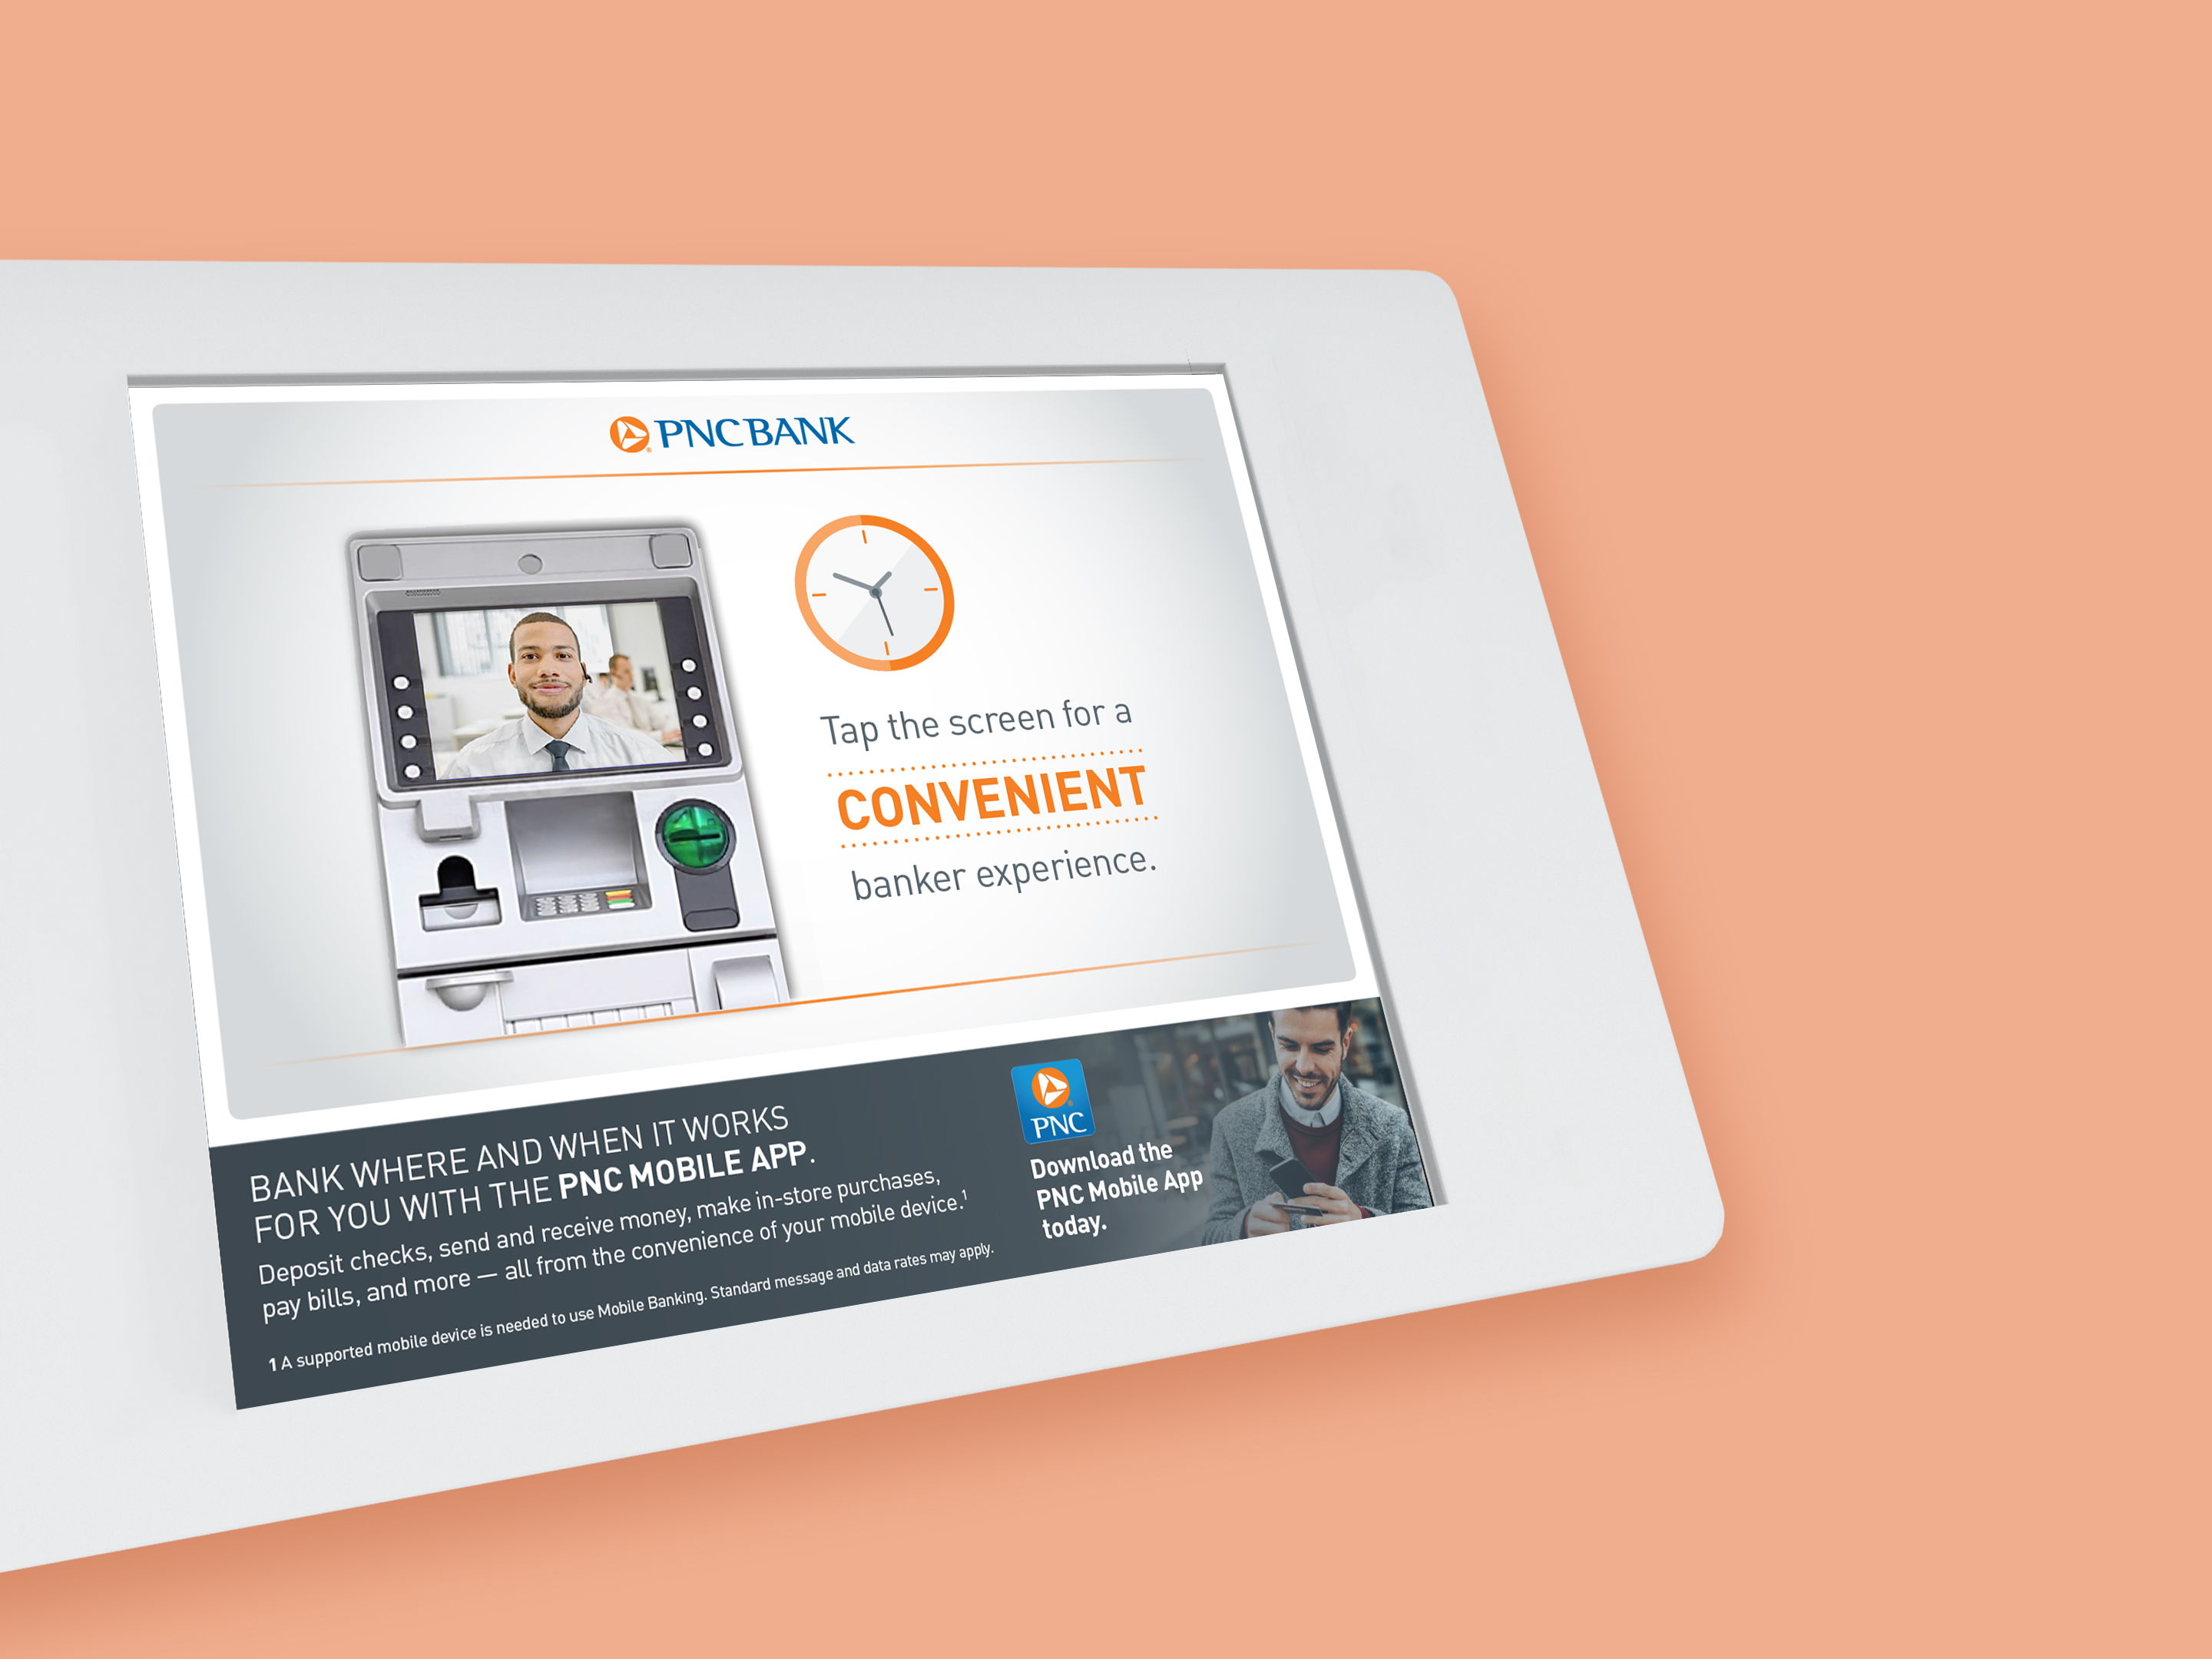 """Mockup of an ATM screen over a salmon-colored background. The screen consists of a light gray gradient background, with an ATM featuring an image of a banker on the screen to the left. On the right, there is a clock icon and copy that reads """"Tap the screen for a convenient banker experience."""" The bottom of the screen houses a dark gray section with an ad for the PNC Mobile App."""